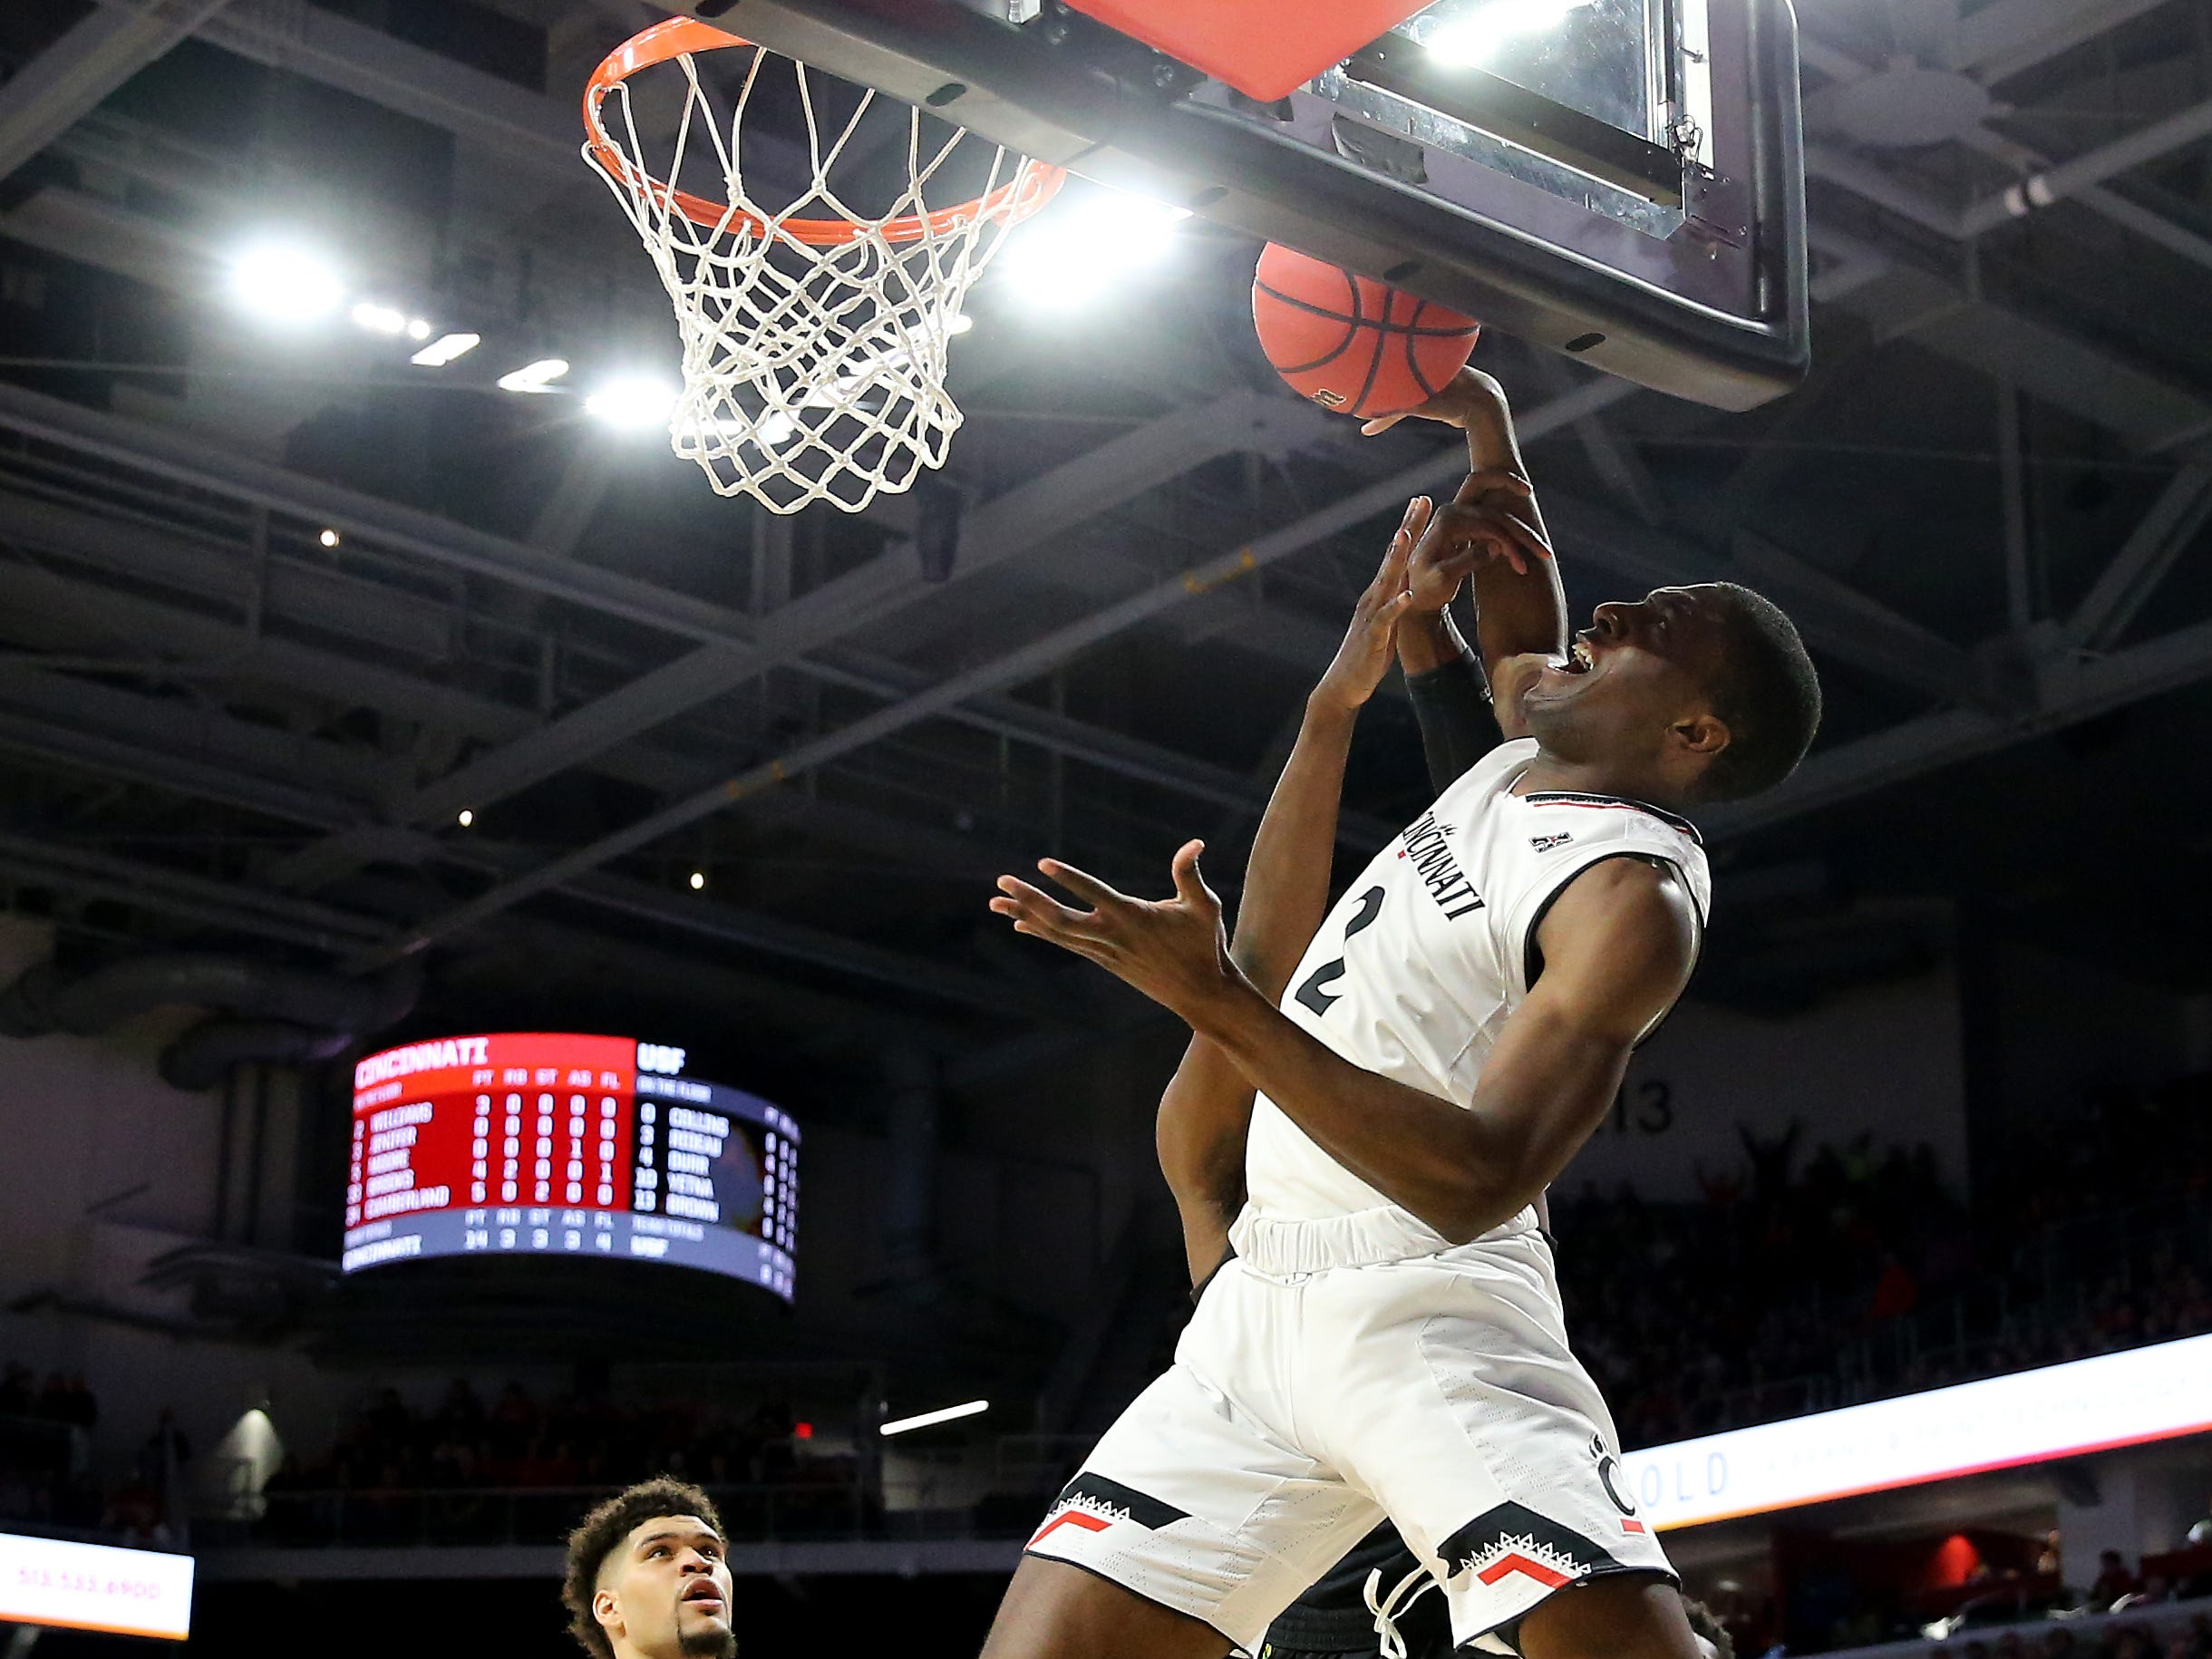 Cincinnati Bearcats guard Keith Williams (2) leaps for a rebound in the first half of an NCAA college basketball game against the South Florida Bulls, Tuesday, Jan. 15, 2019, at Fifth Third Arena in Cincinnati.